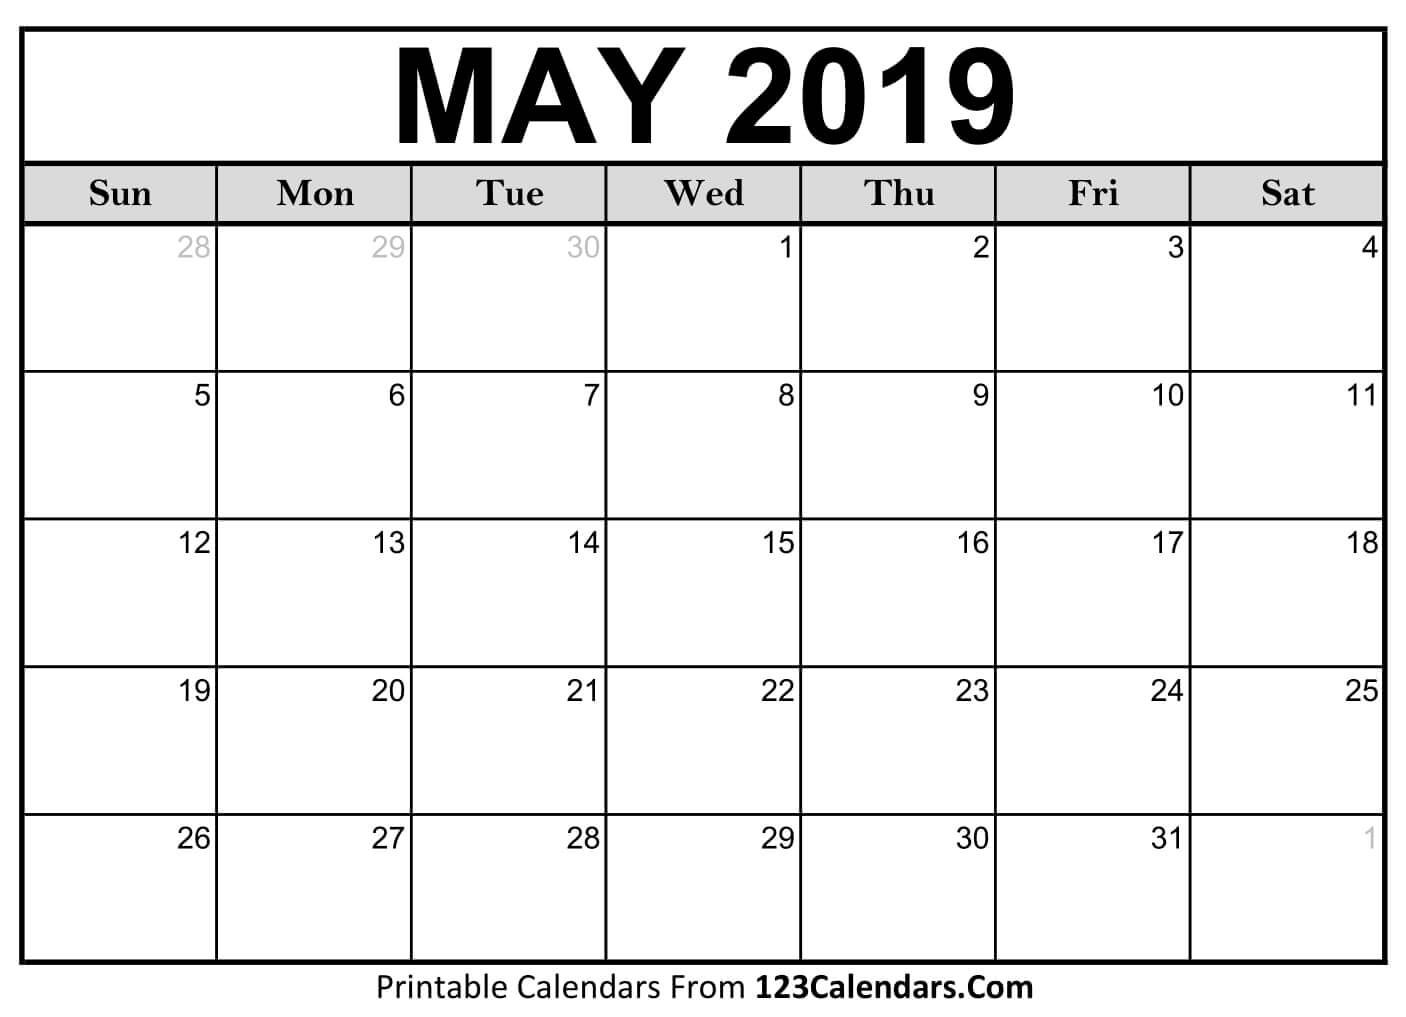 Printable May 2019 Calendar Templates - 123Calendars Calendar Of 2019 May